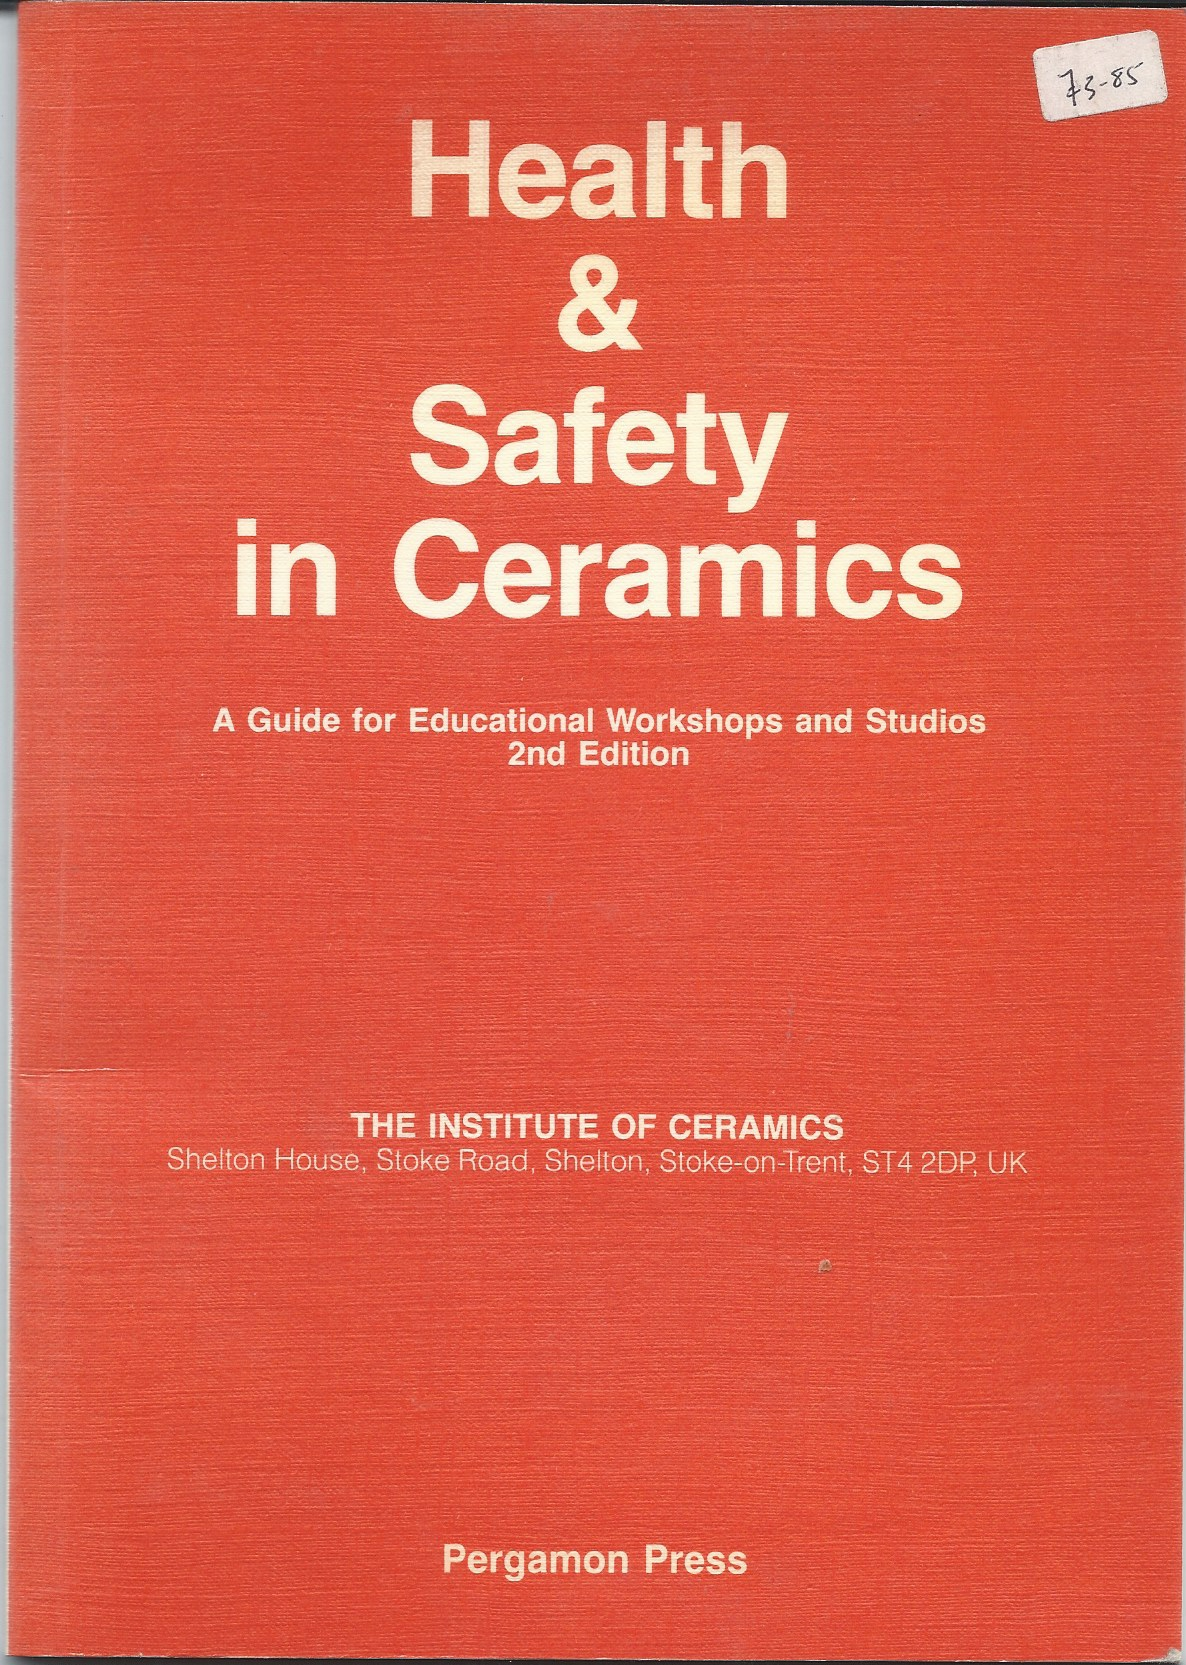 Image for A Guide for Educational Workshops and Studios; HEALTH & SAFETY IN CERAMICS